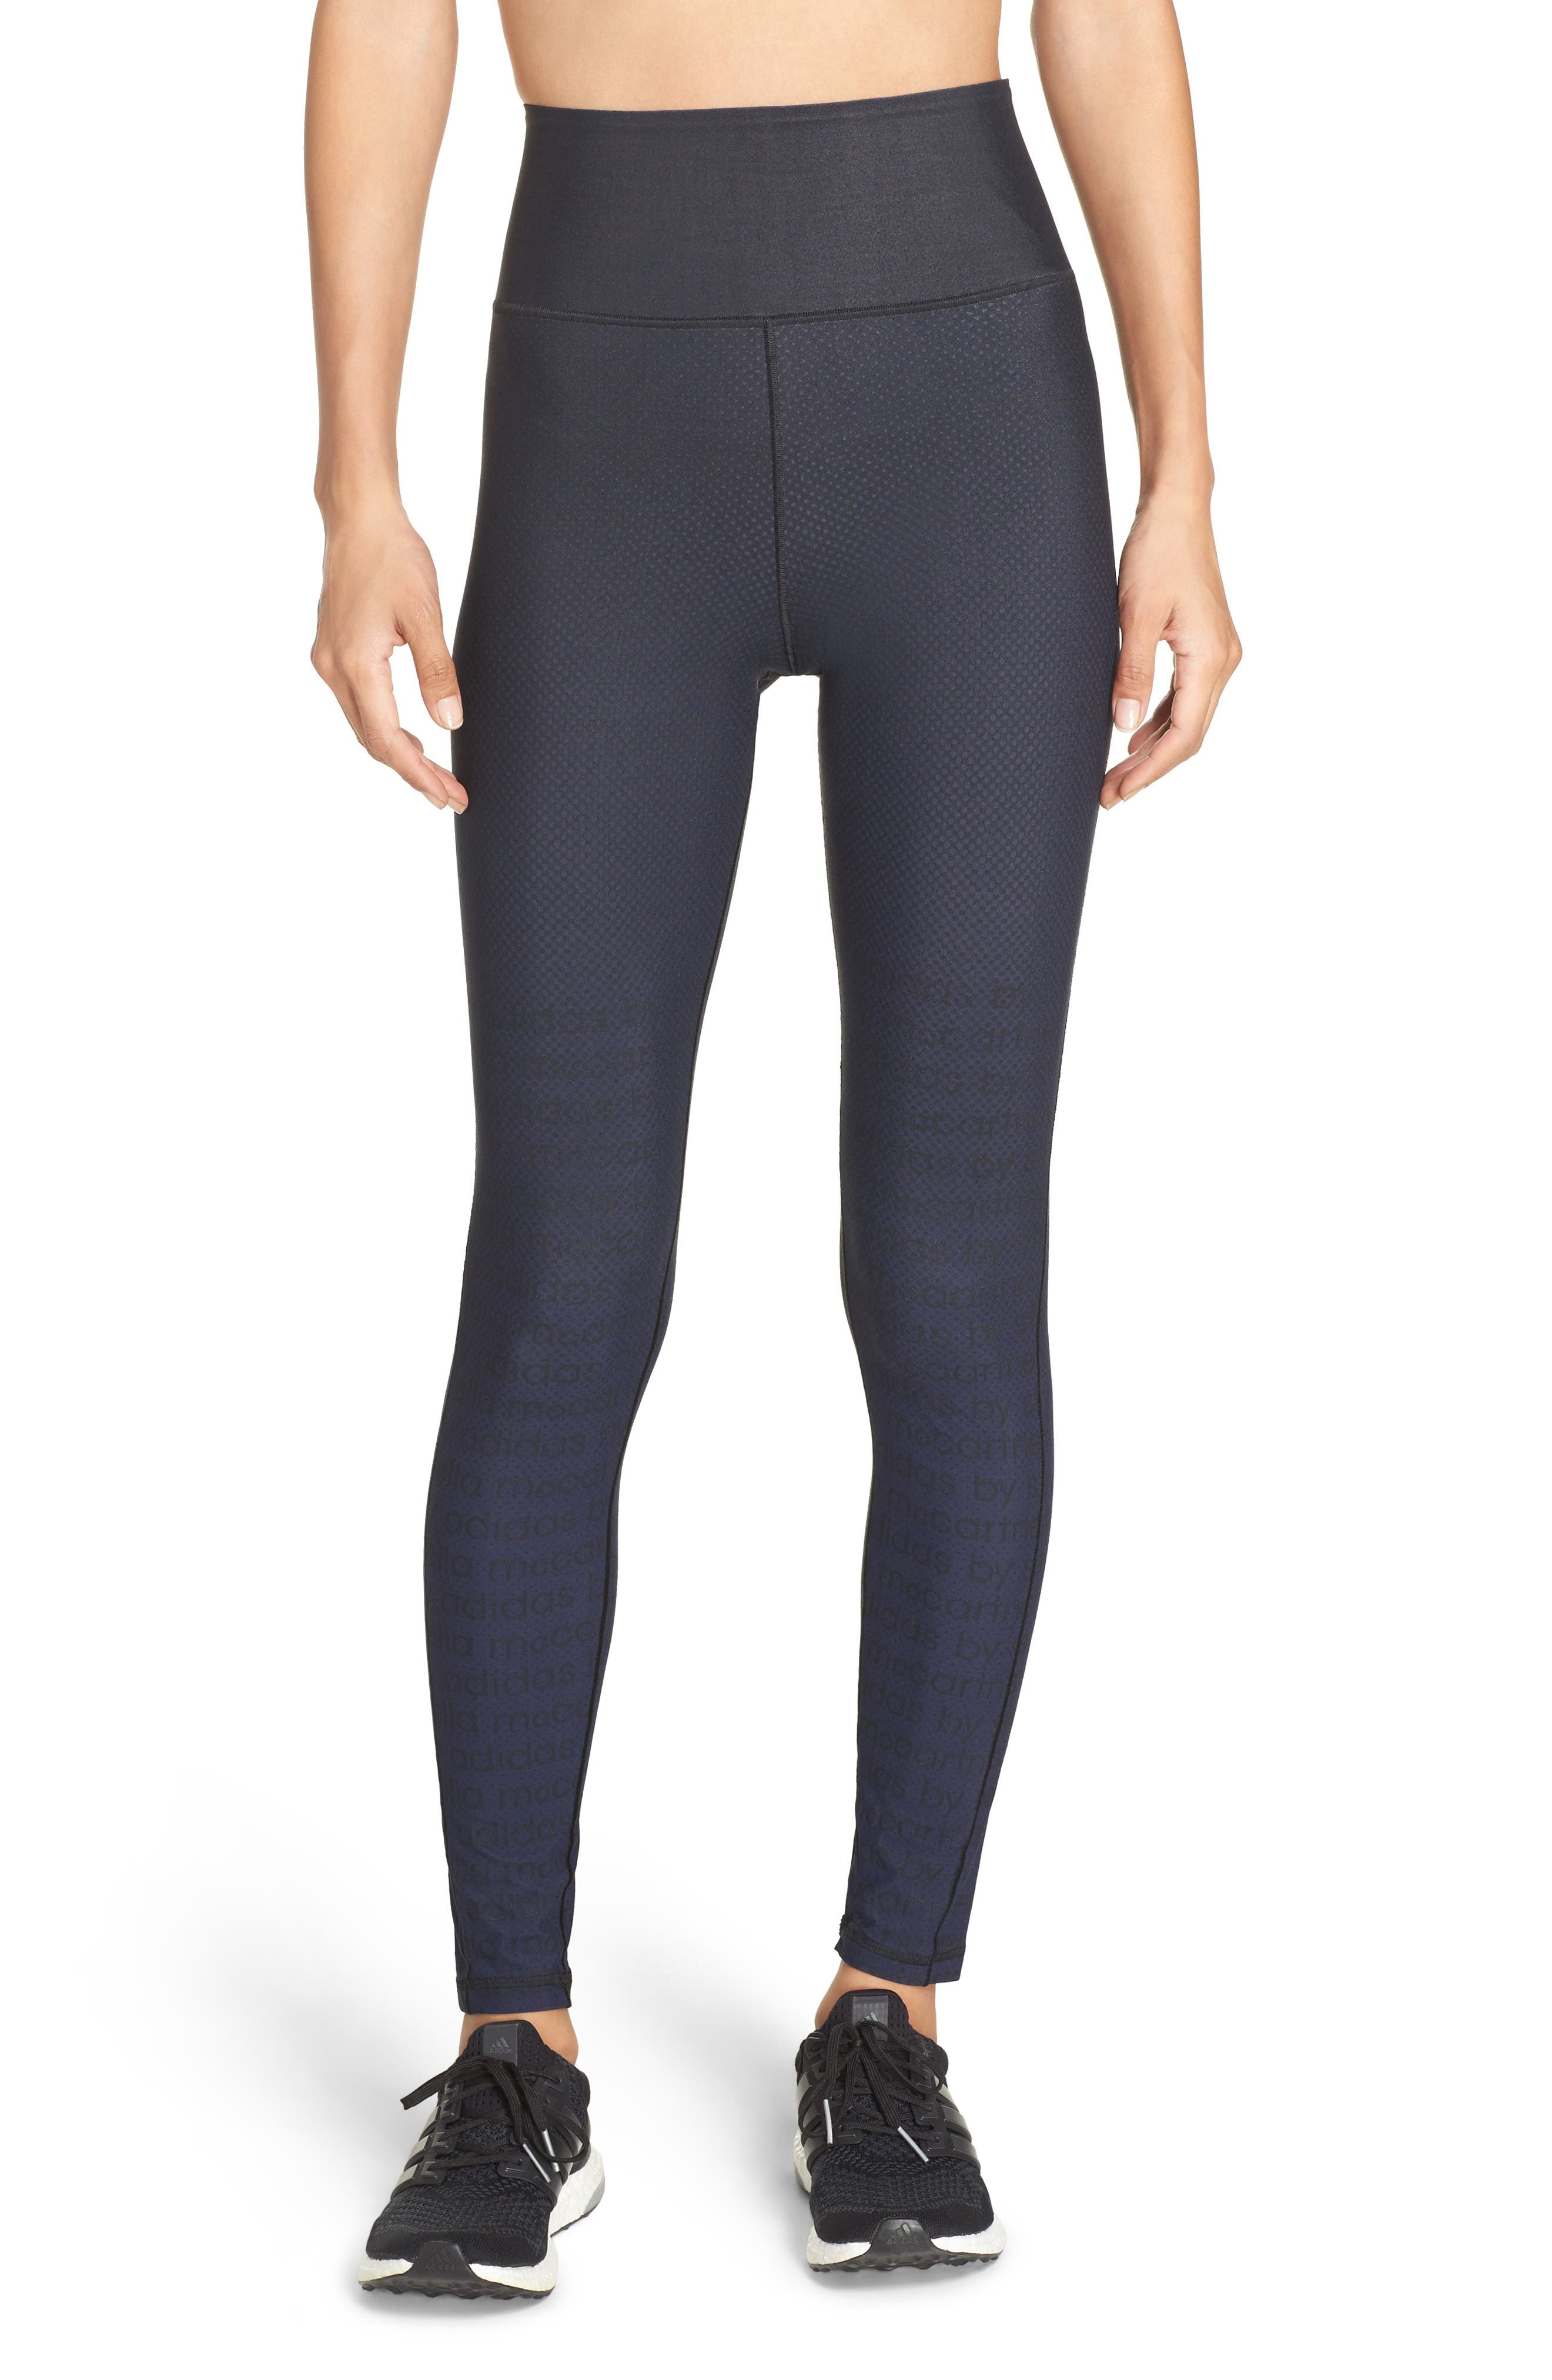 Training Tights,                         Main,                         color, 001